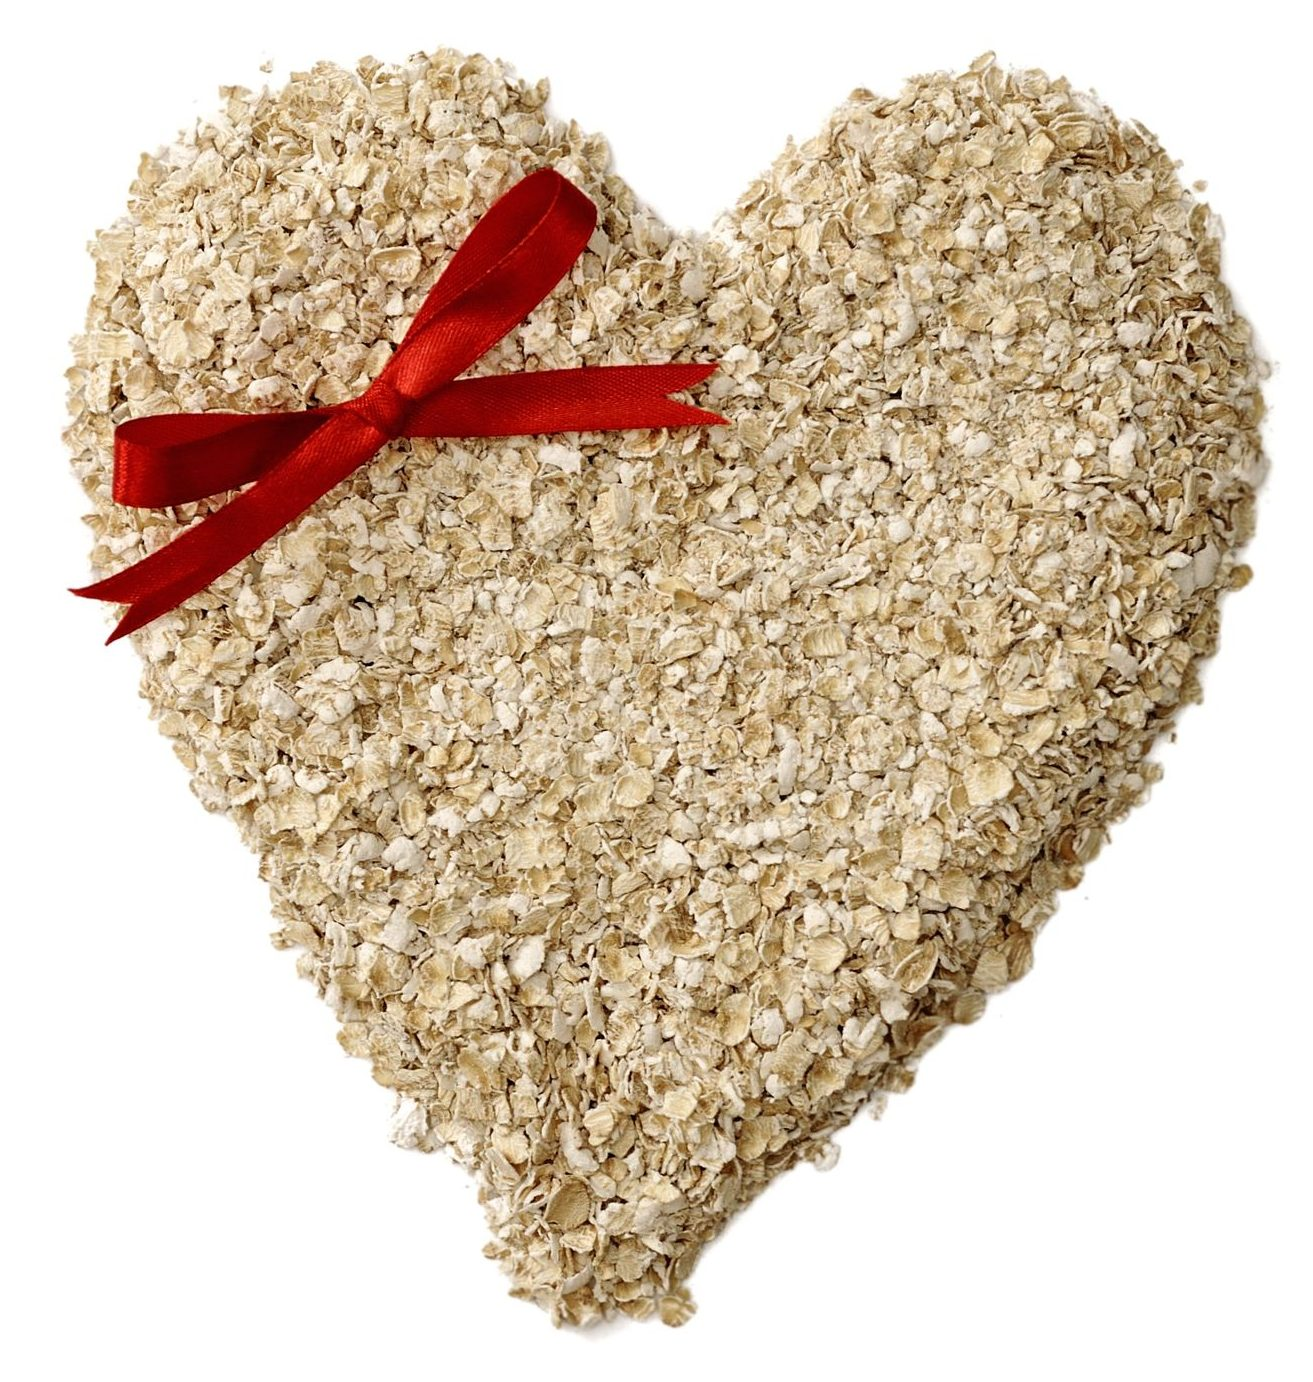 15565042 - heart shape oatmeal isolated over white background